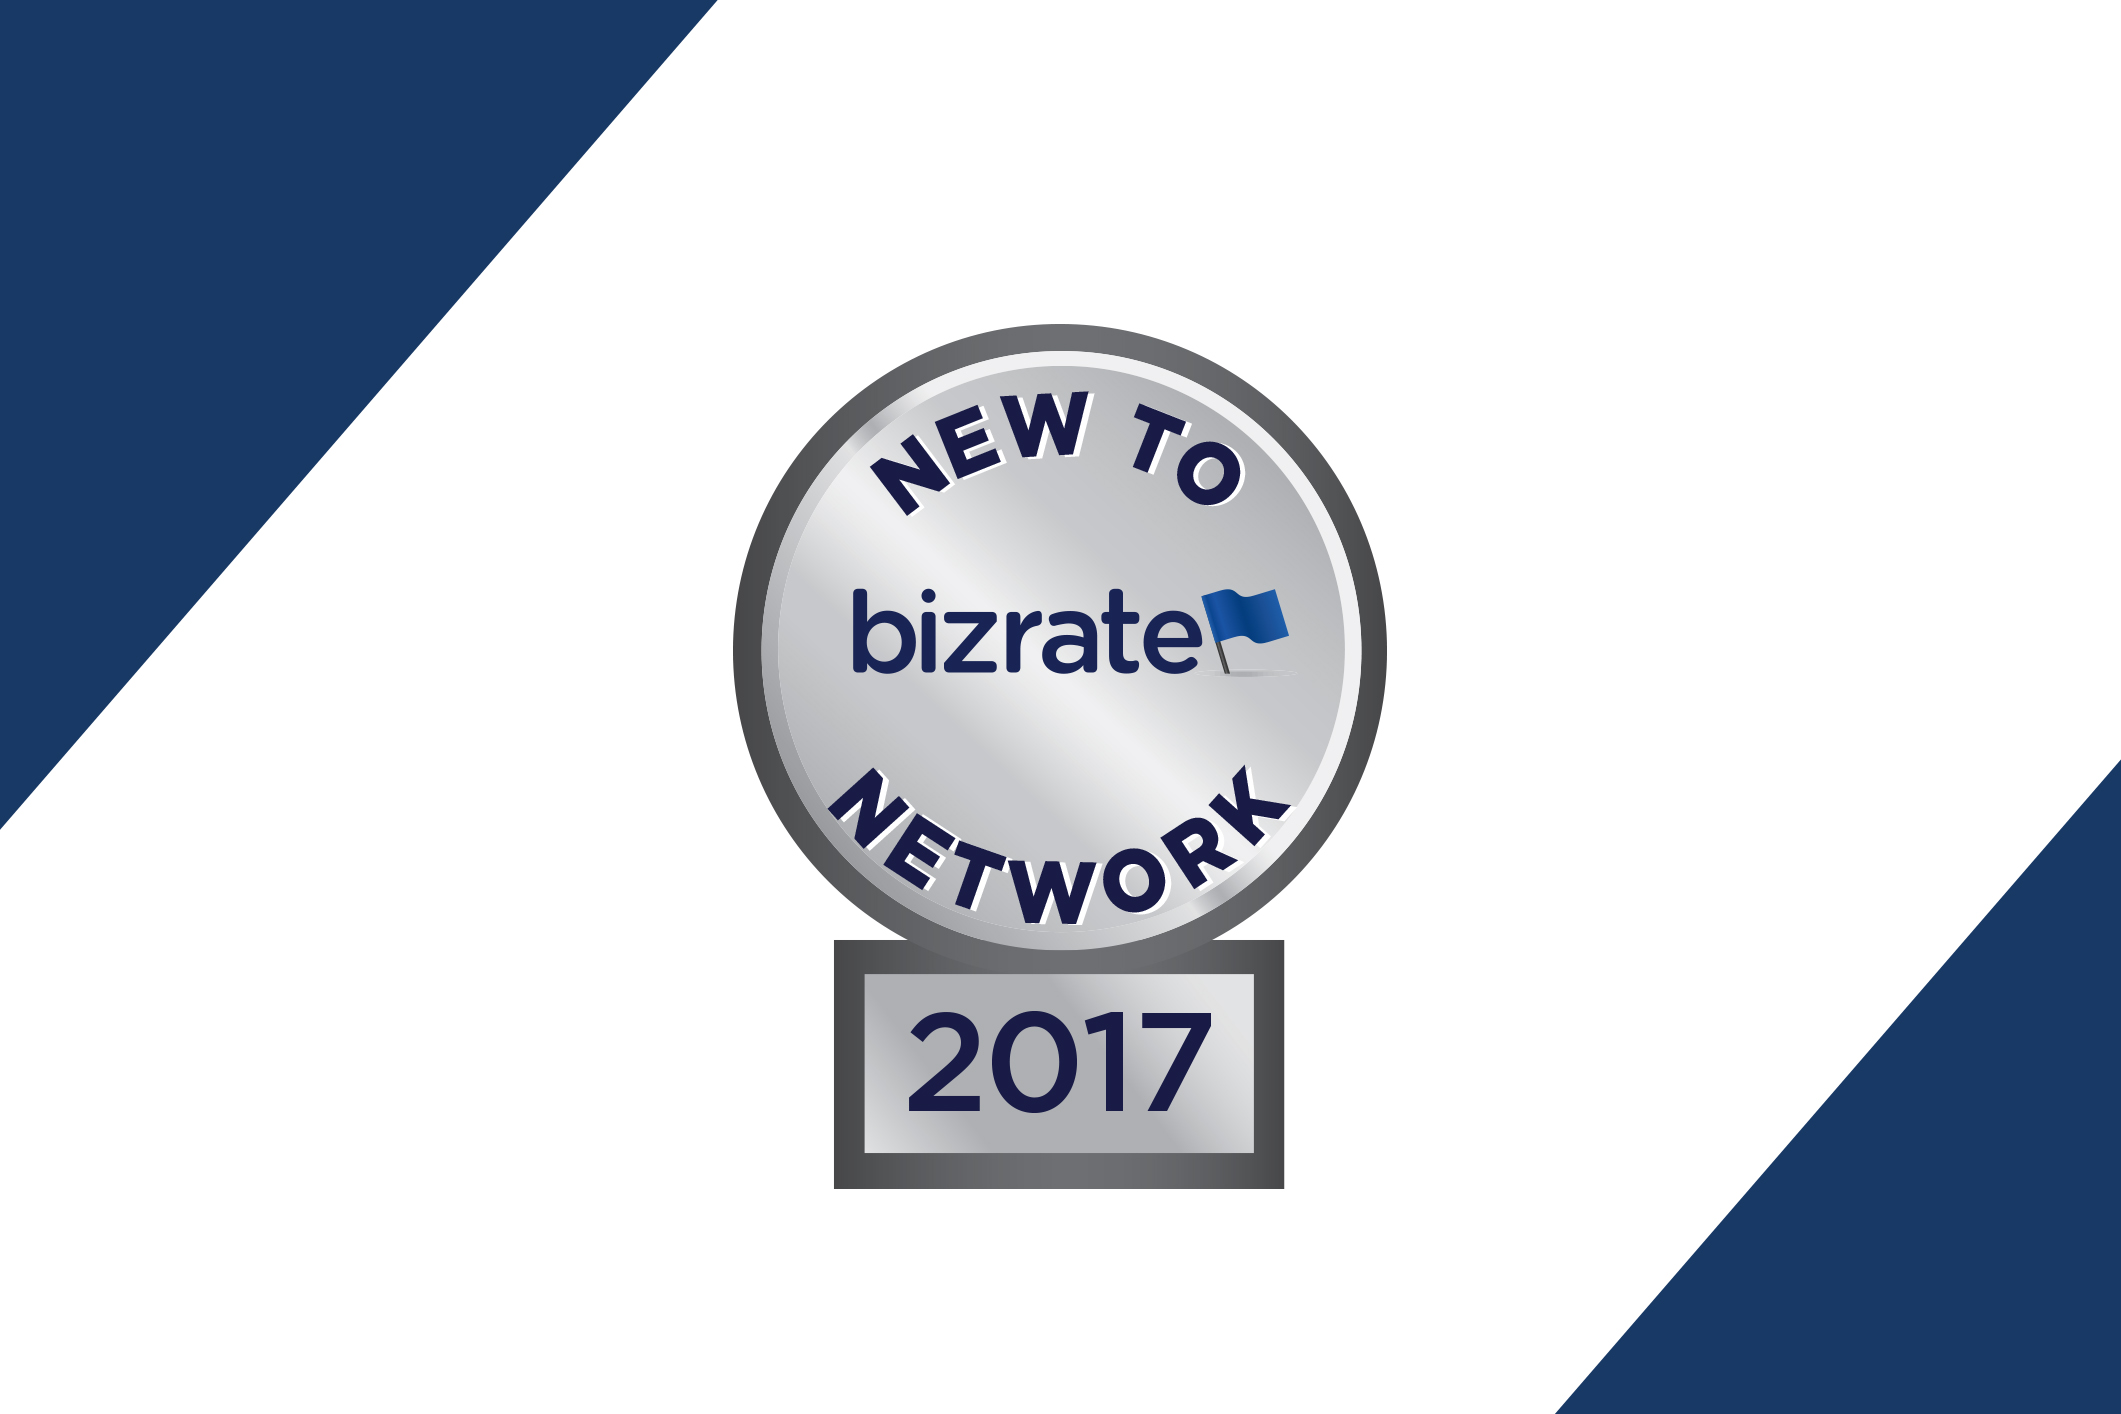 new to network honoree status badge logo